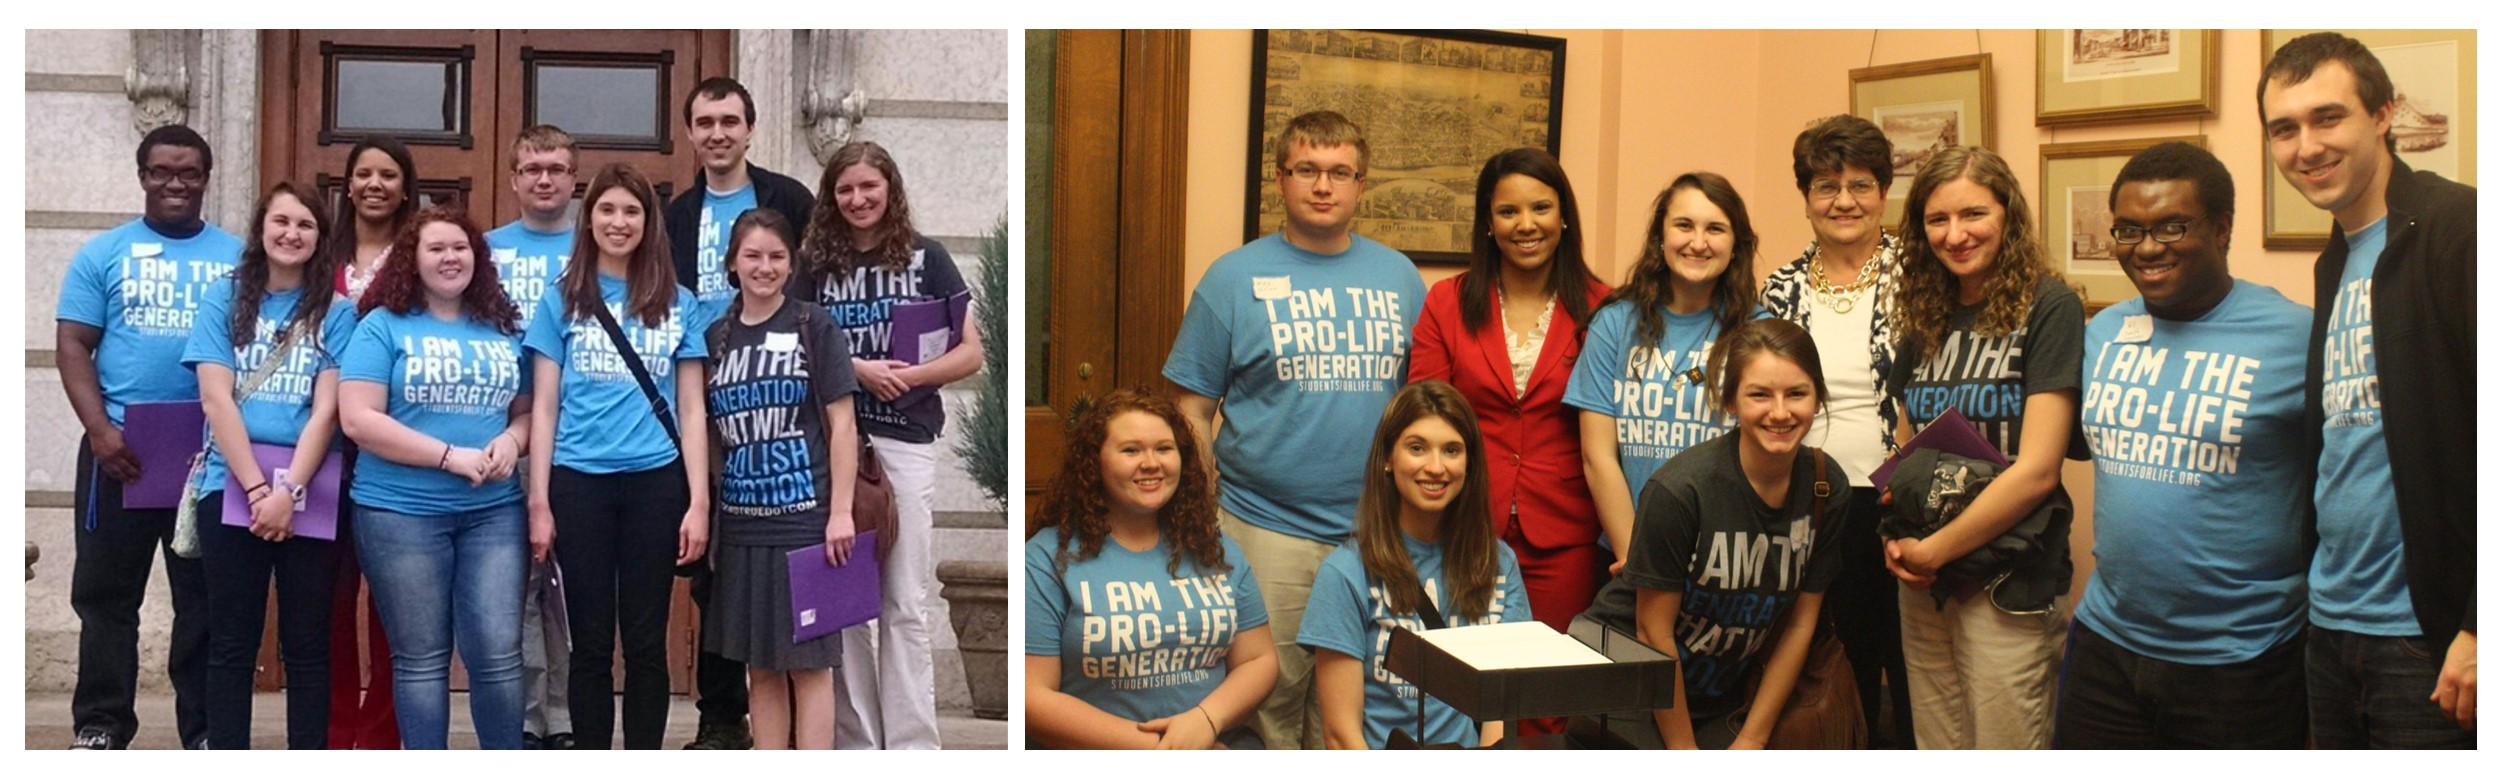 4-14-15_Students_for_Life_at_Statehouse_3.jpg